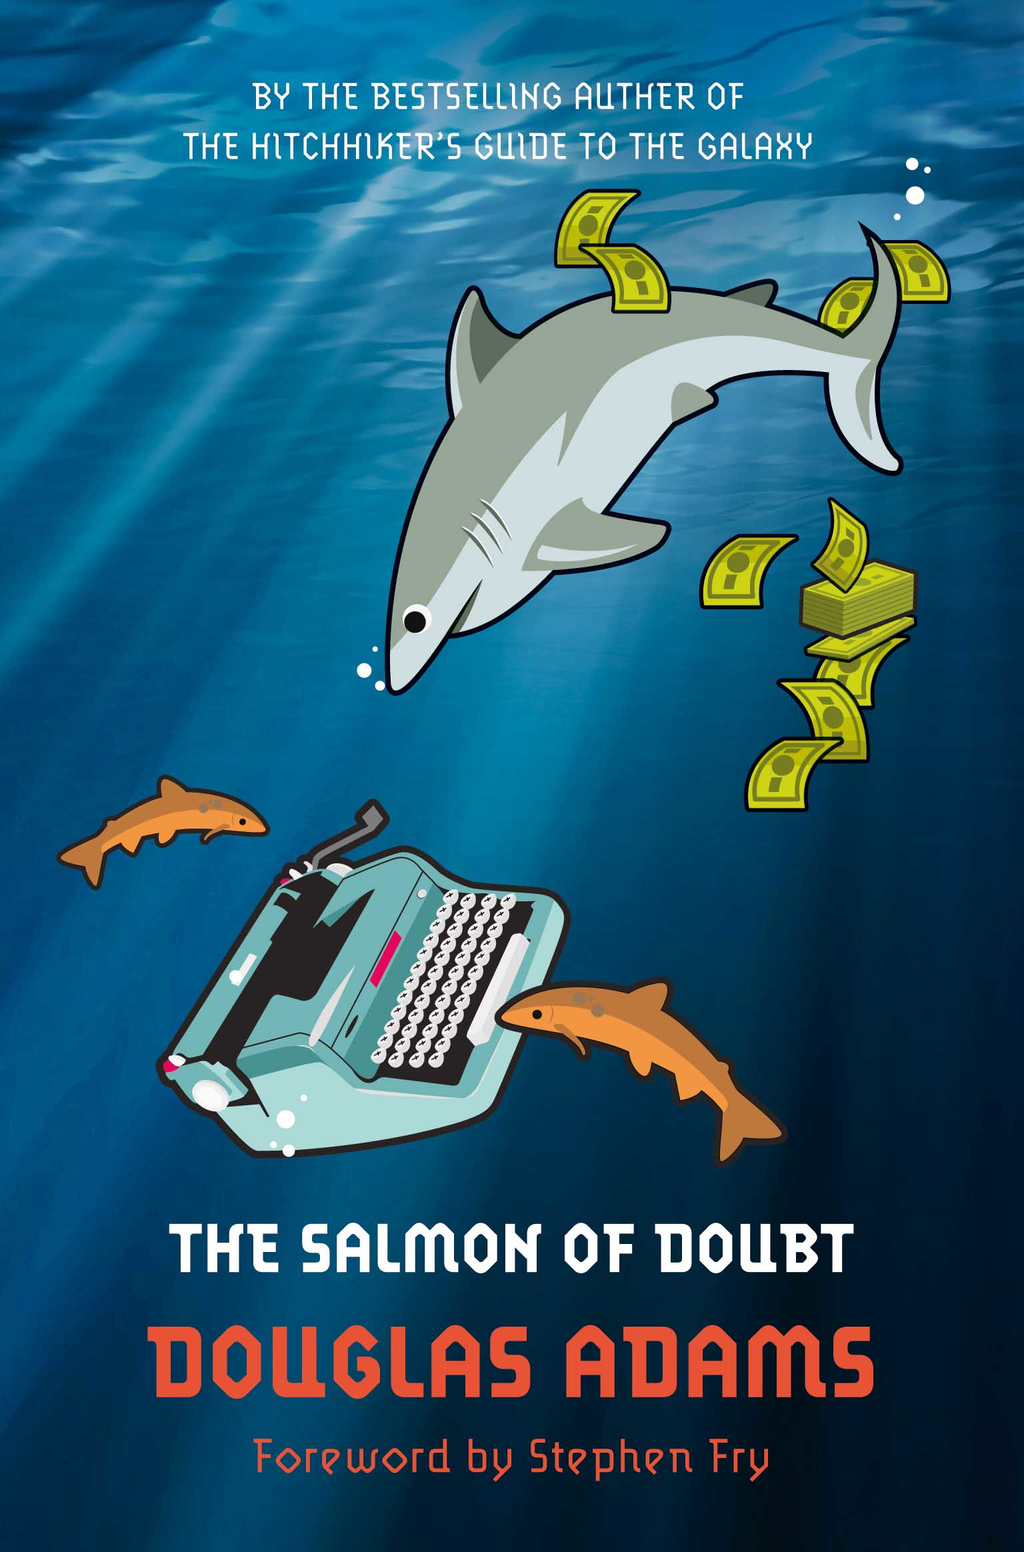 The Salmon of Doubt Hitchhiking the Galaxy One Last Time